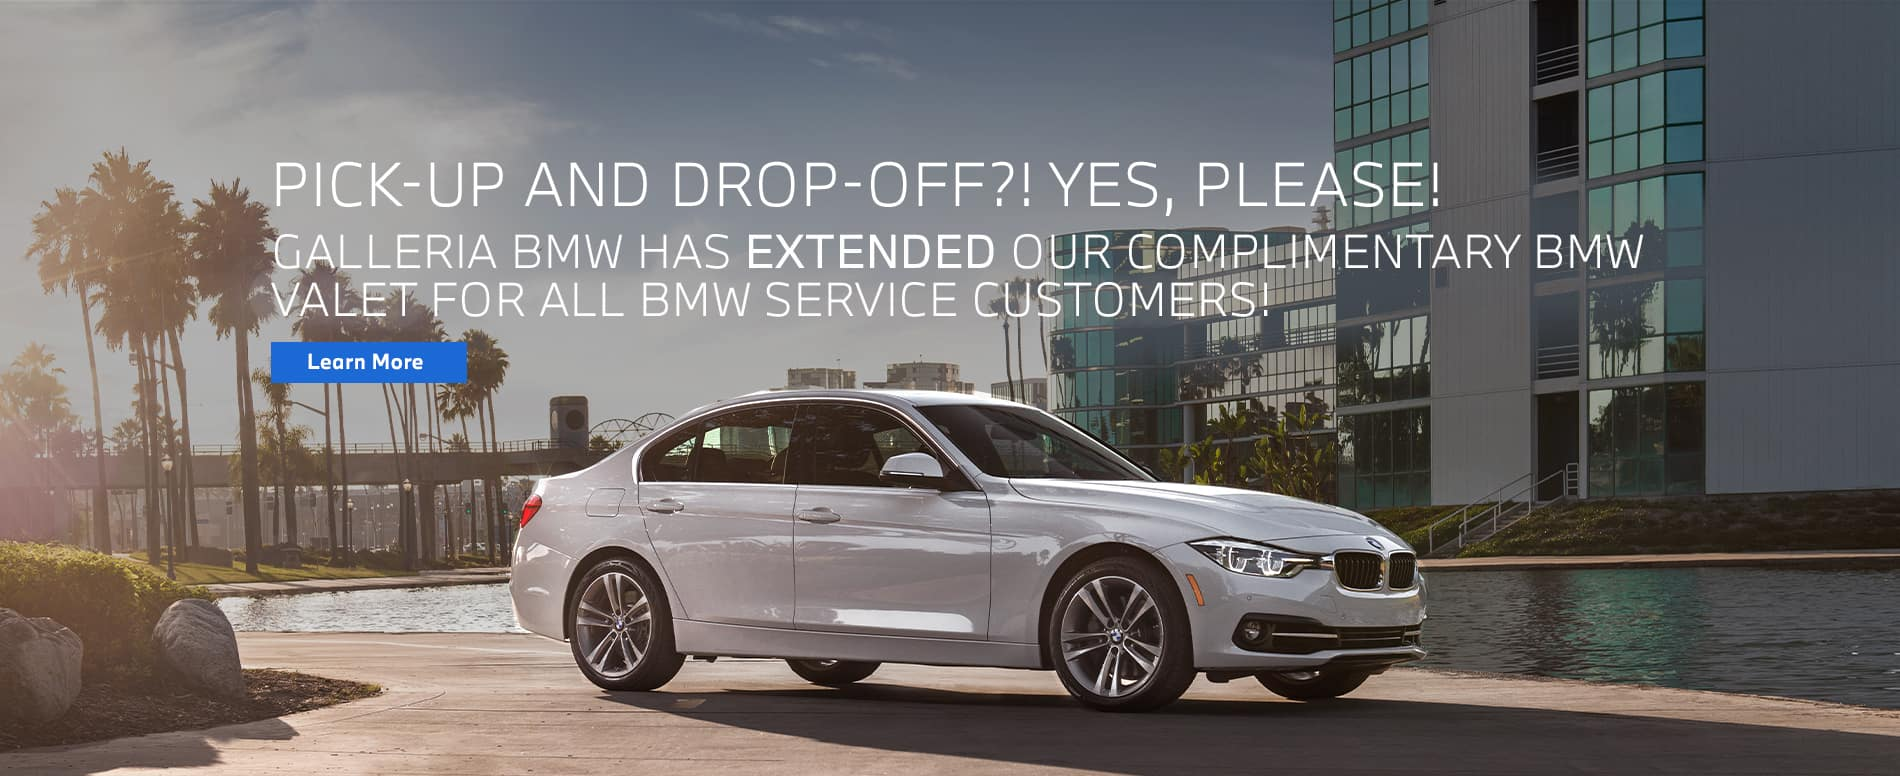 PICK-UP-AND-DROP-OFF-YES-PLEASE-GALLERIA-BMW-HAS-EXTENEDED-COMPLIMENTARY-BMW-VALET-FOR-ALL-SERVICE-CUSTOMERS